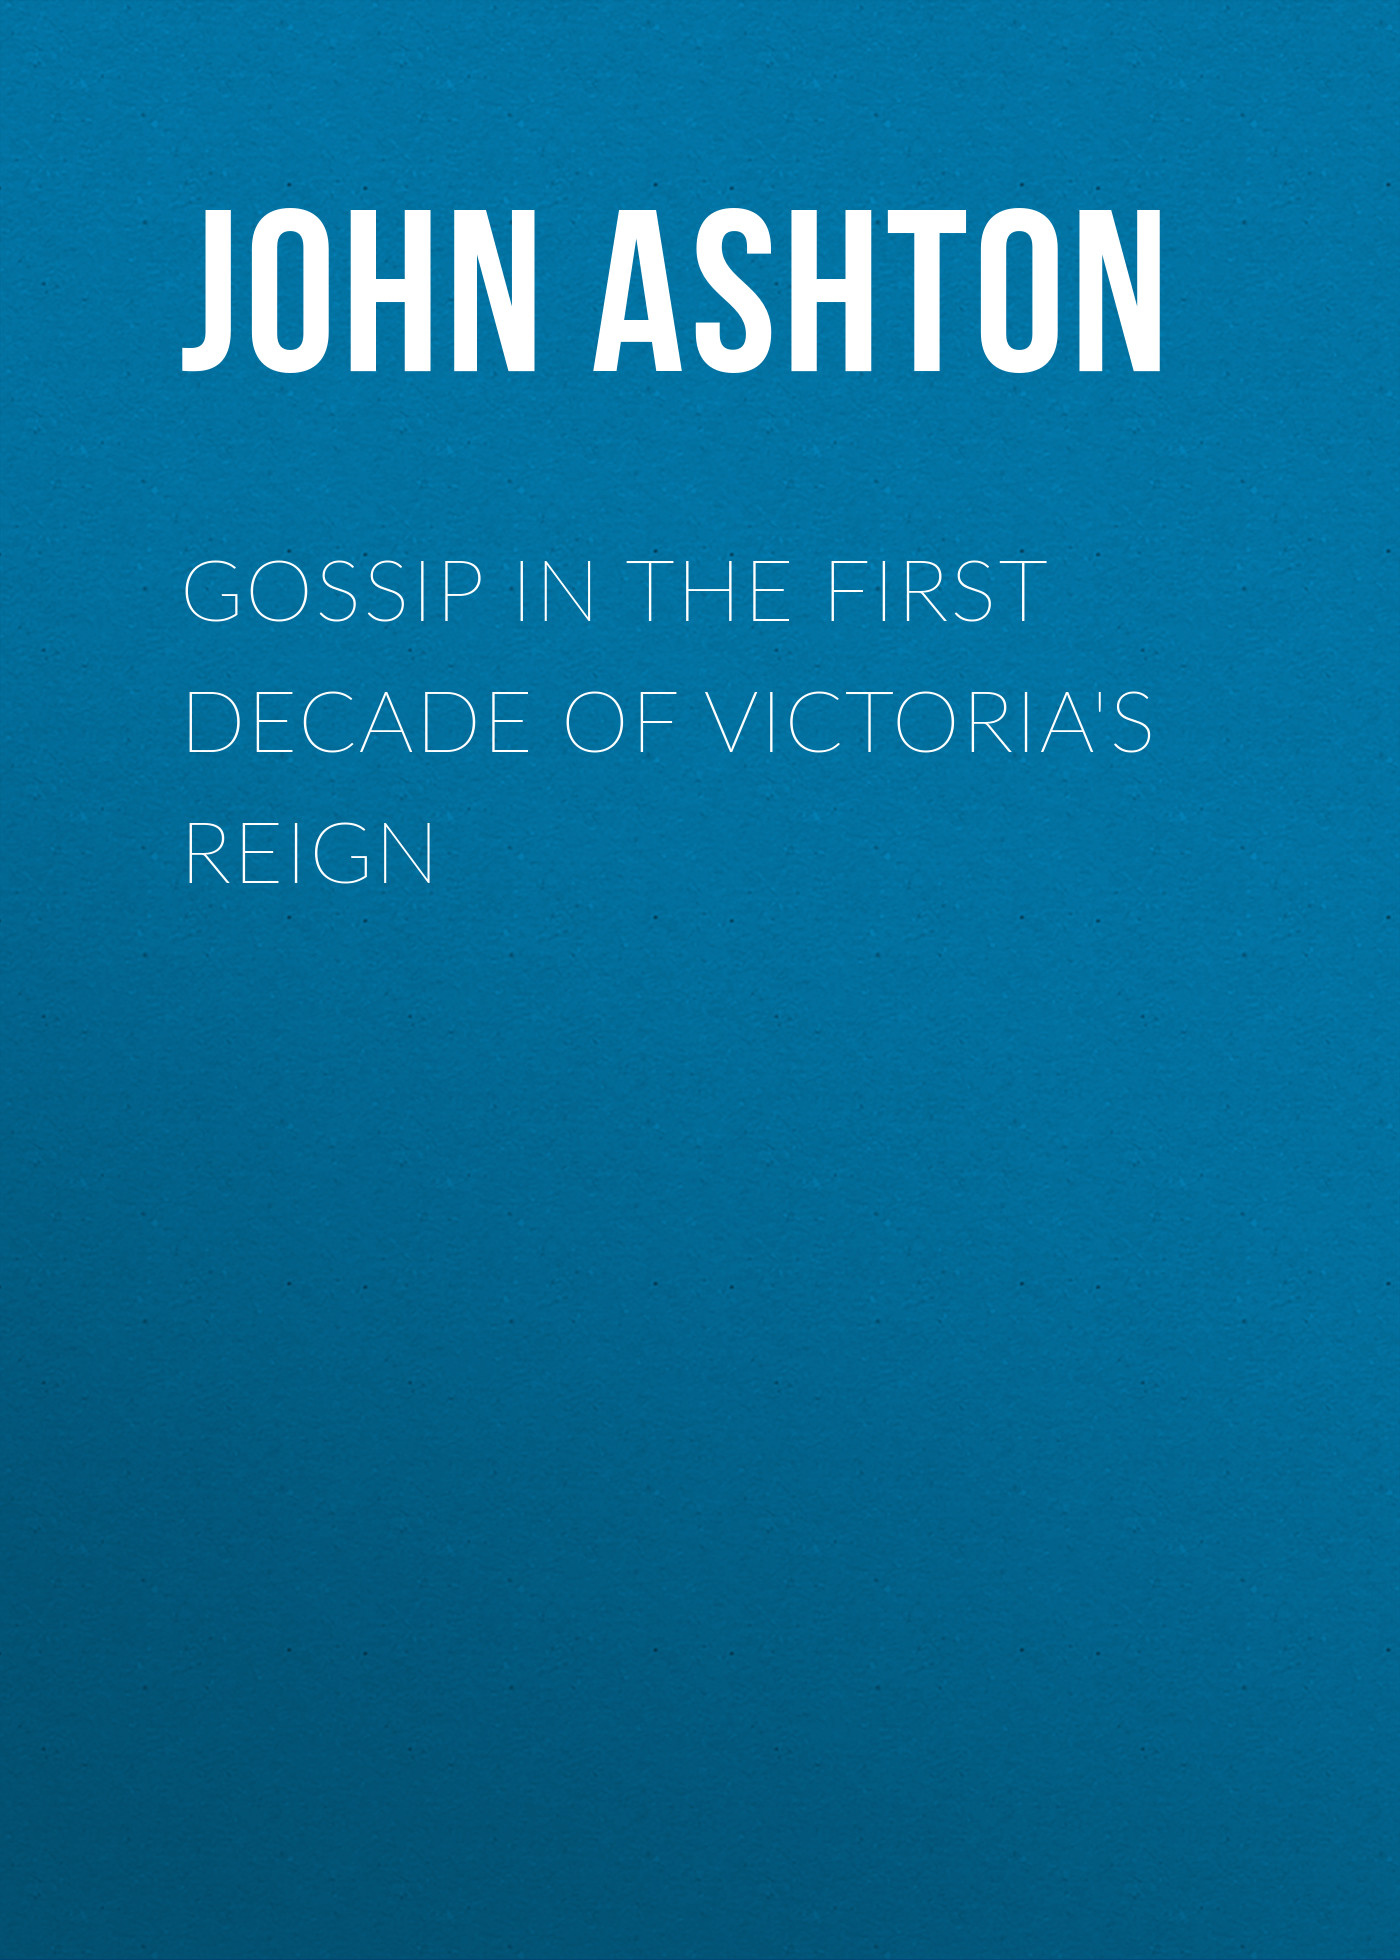 Ashton John Gossip in the First Decade of Victoria's Reign ashton john the dawn of the xixth century in england